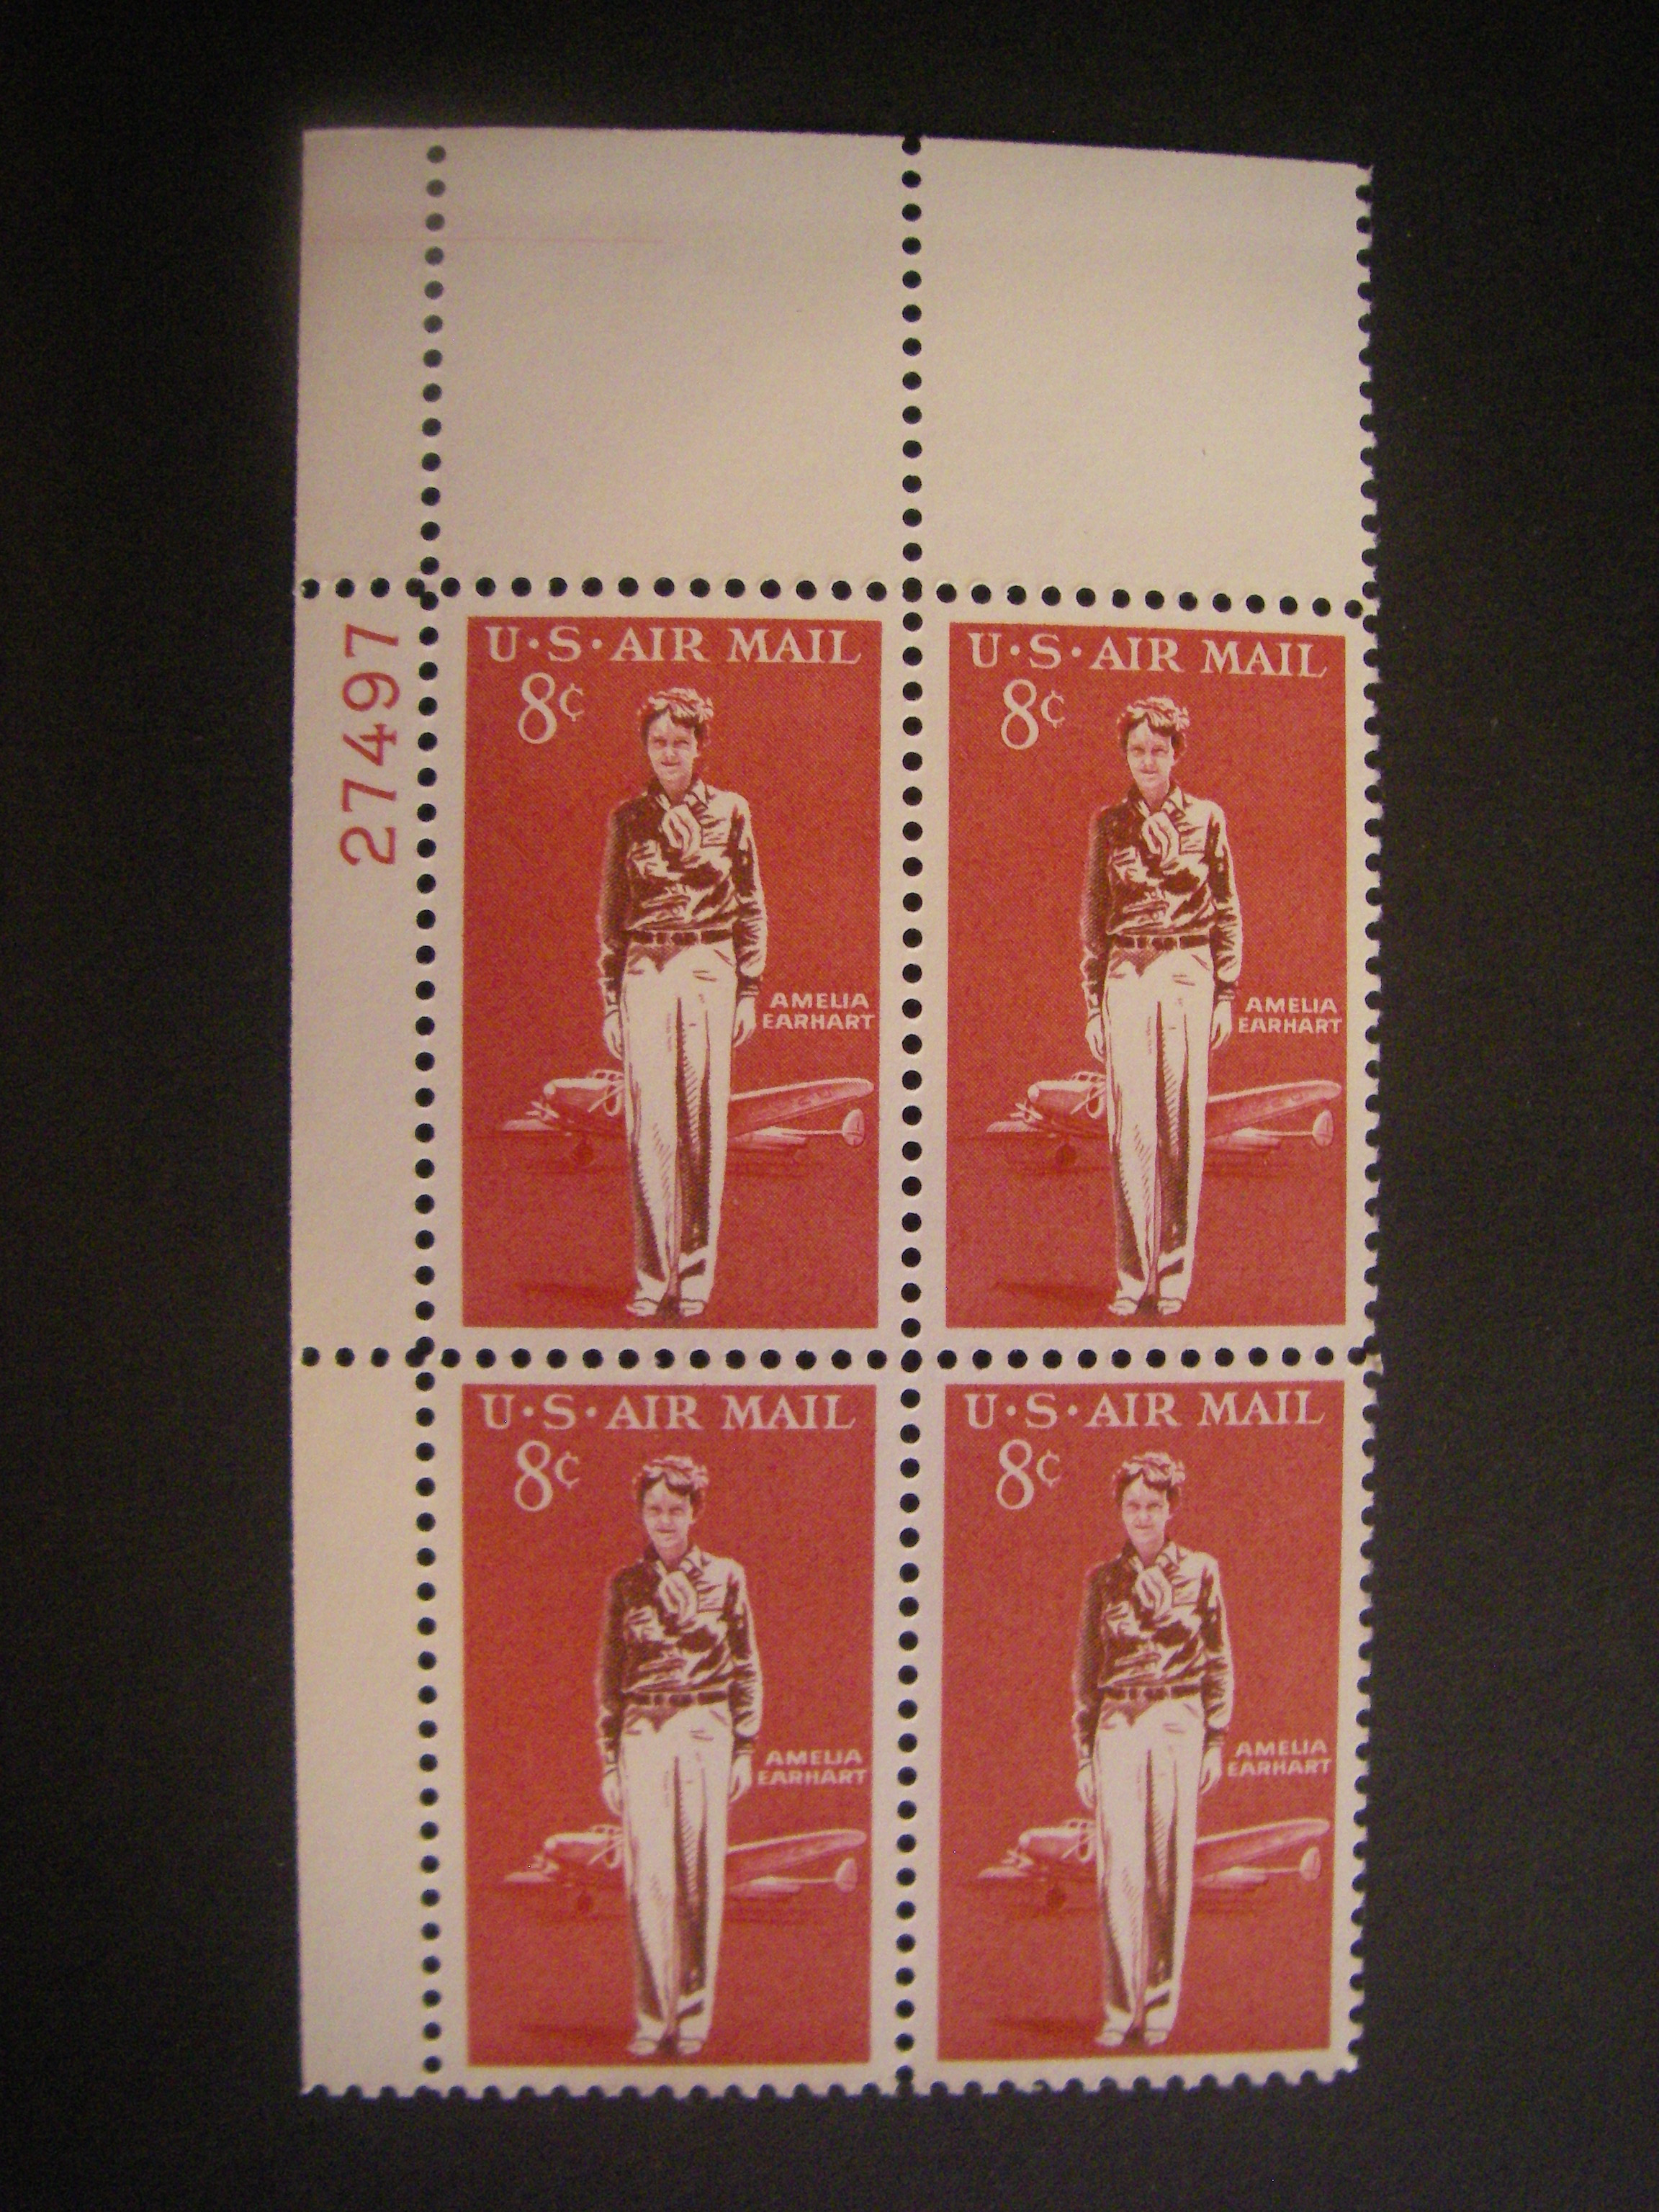 MNH Catalog No C68 USA 1963 8-Cent Amelia Earhart Airmail Block of 4 Postage Stamps